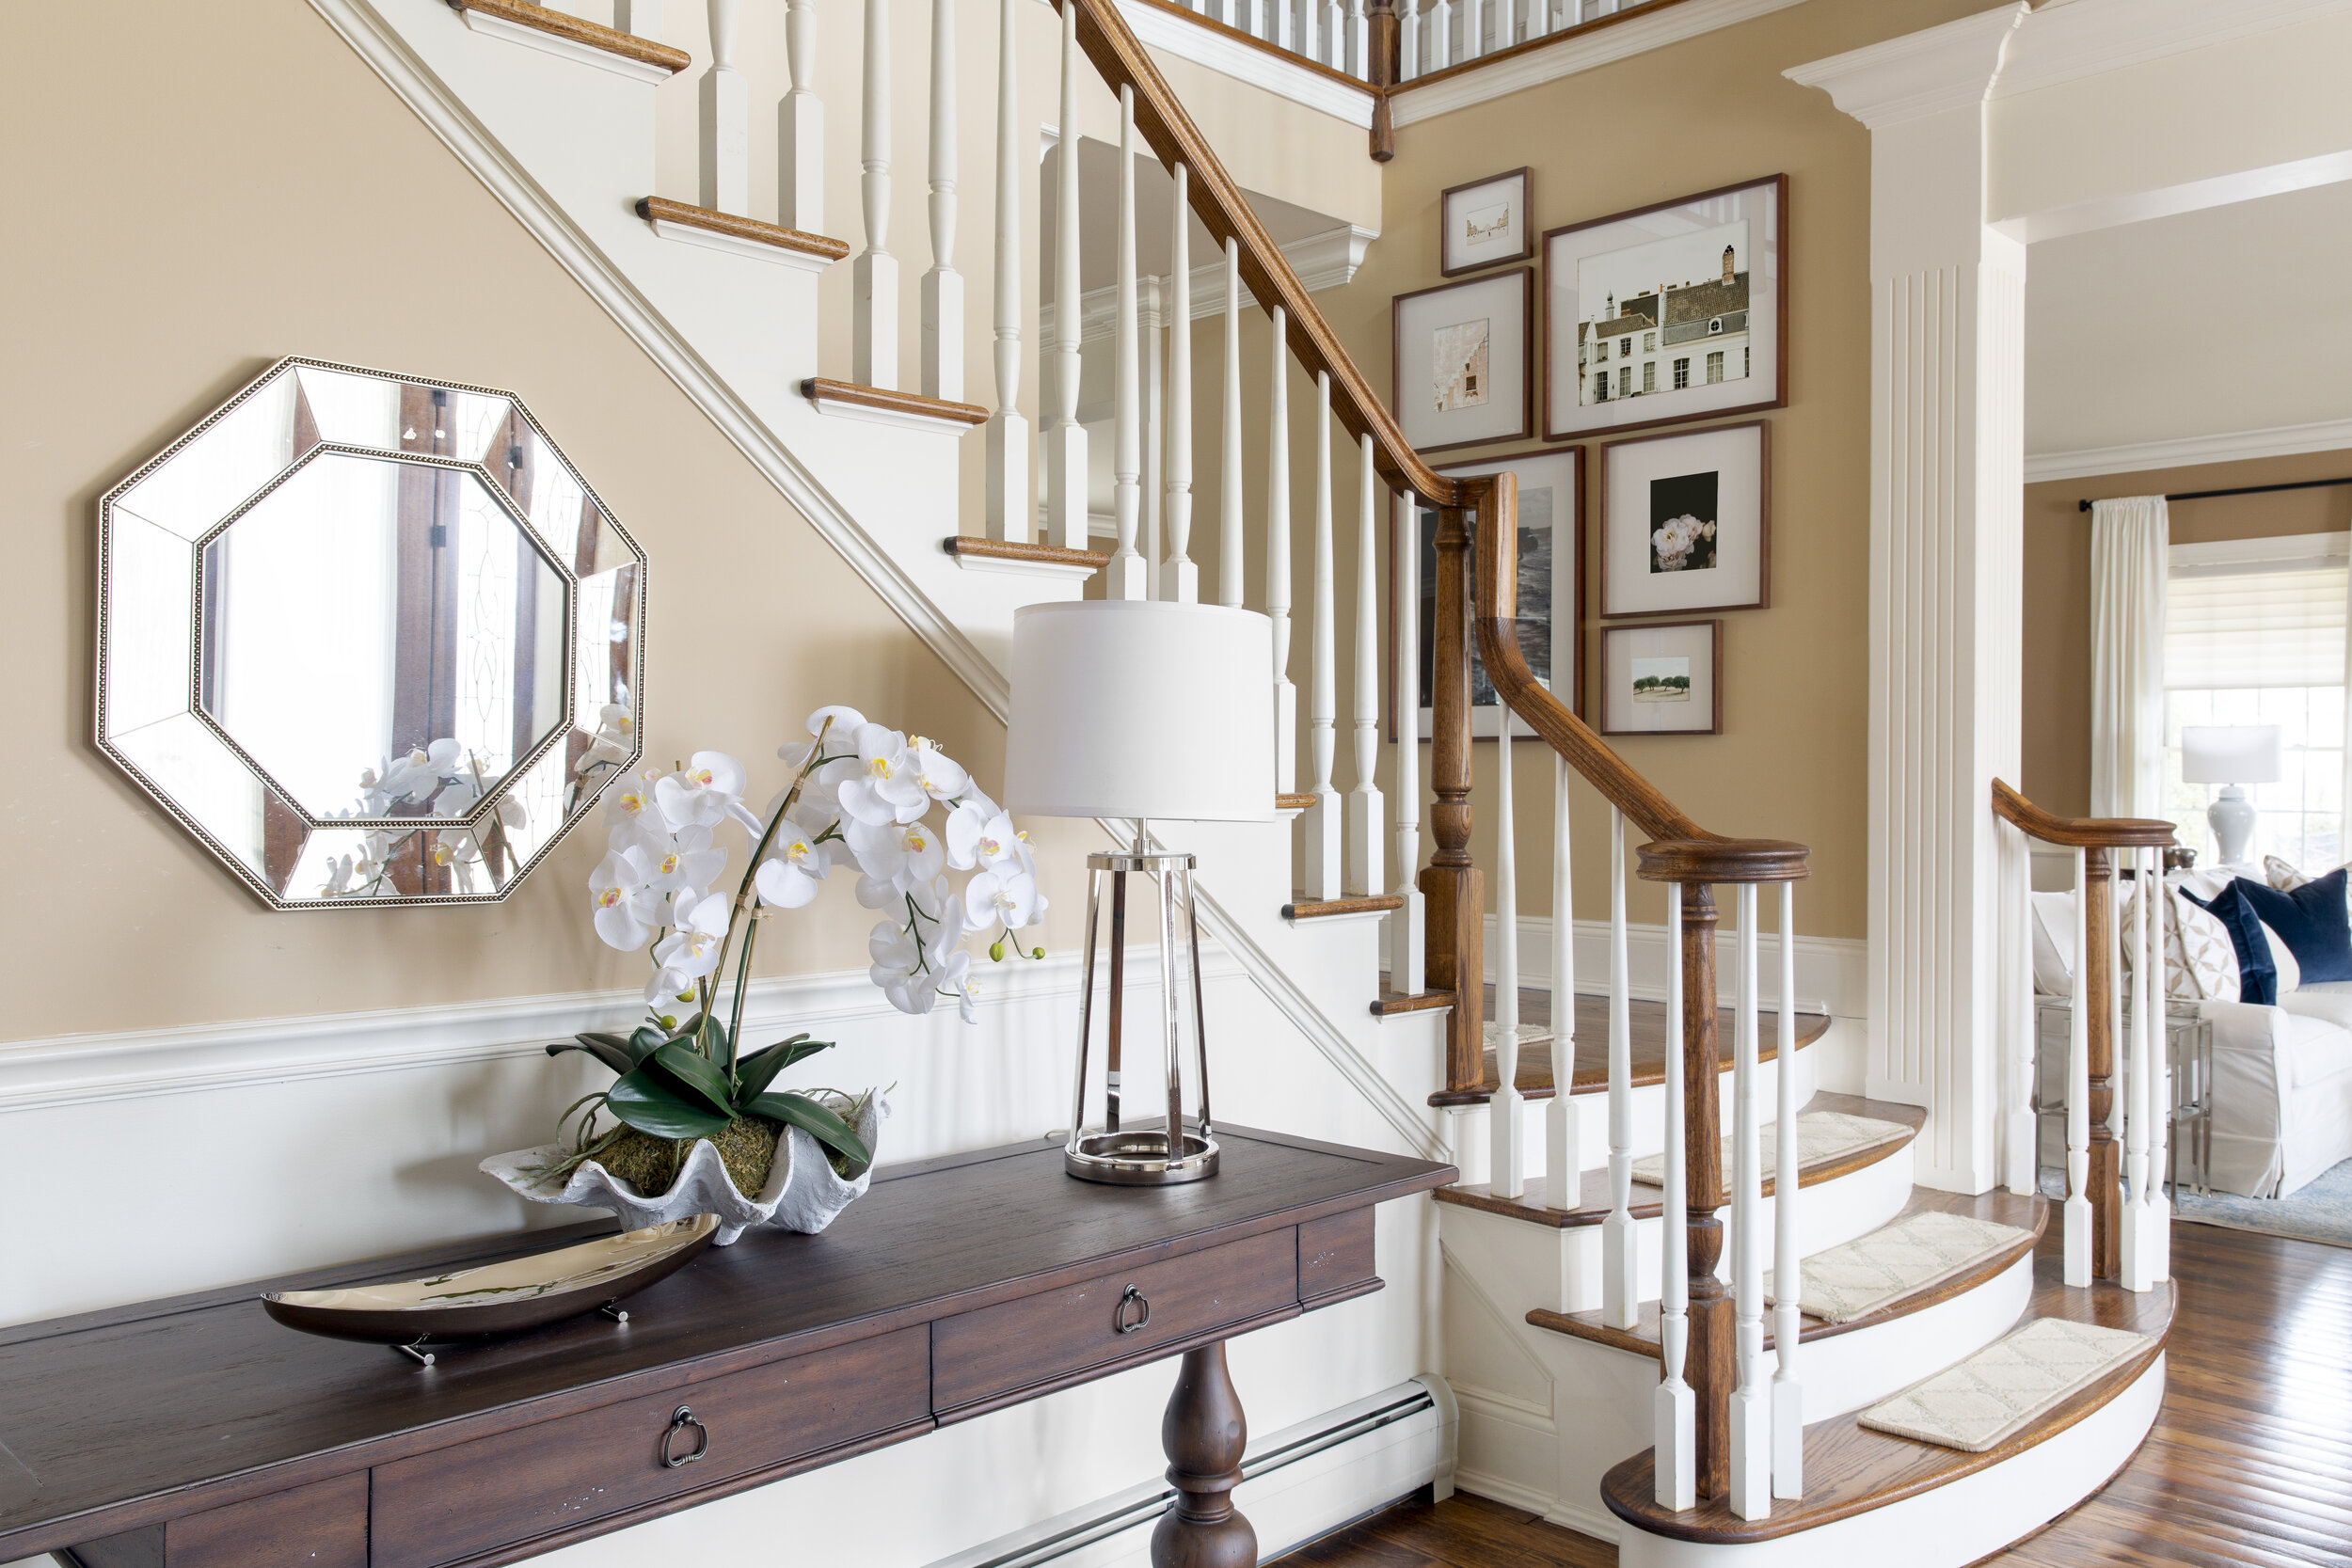 entry-transitional-navy-tc-interiors-2.jpeg